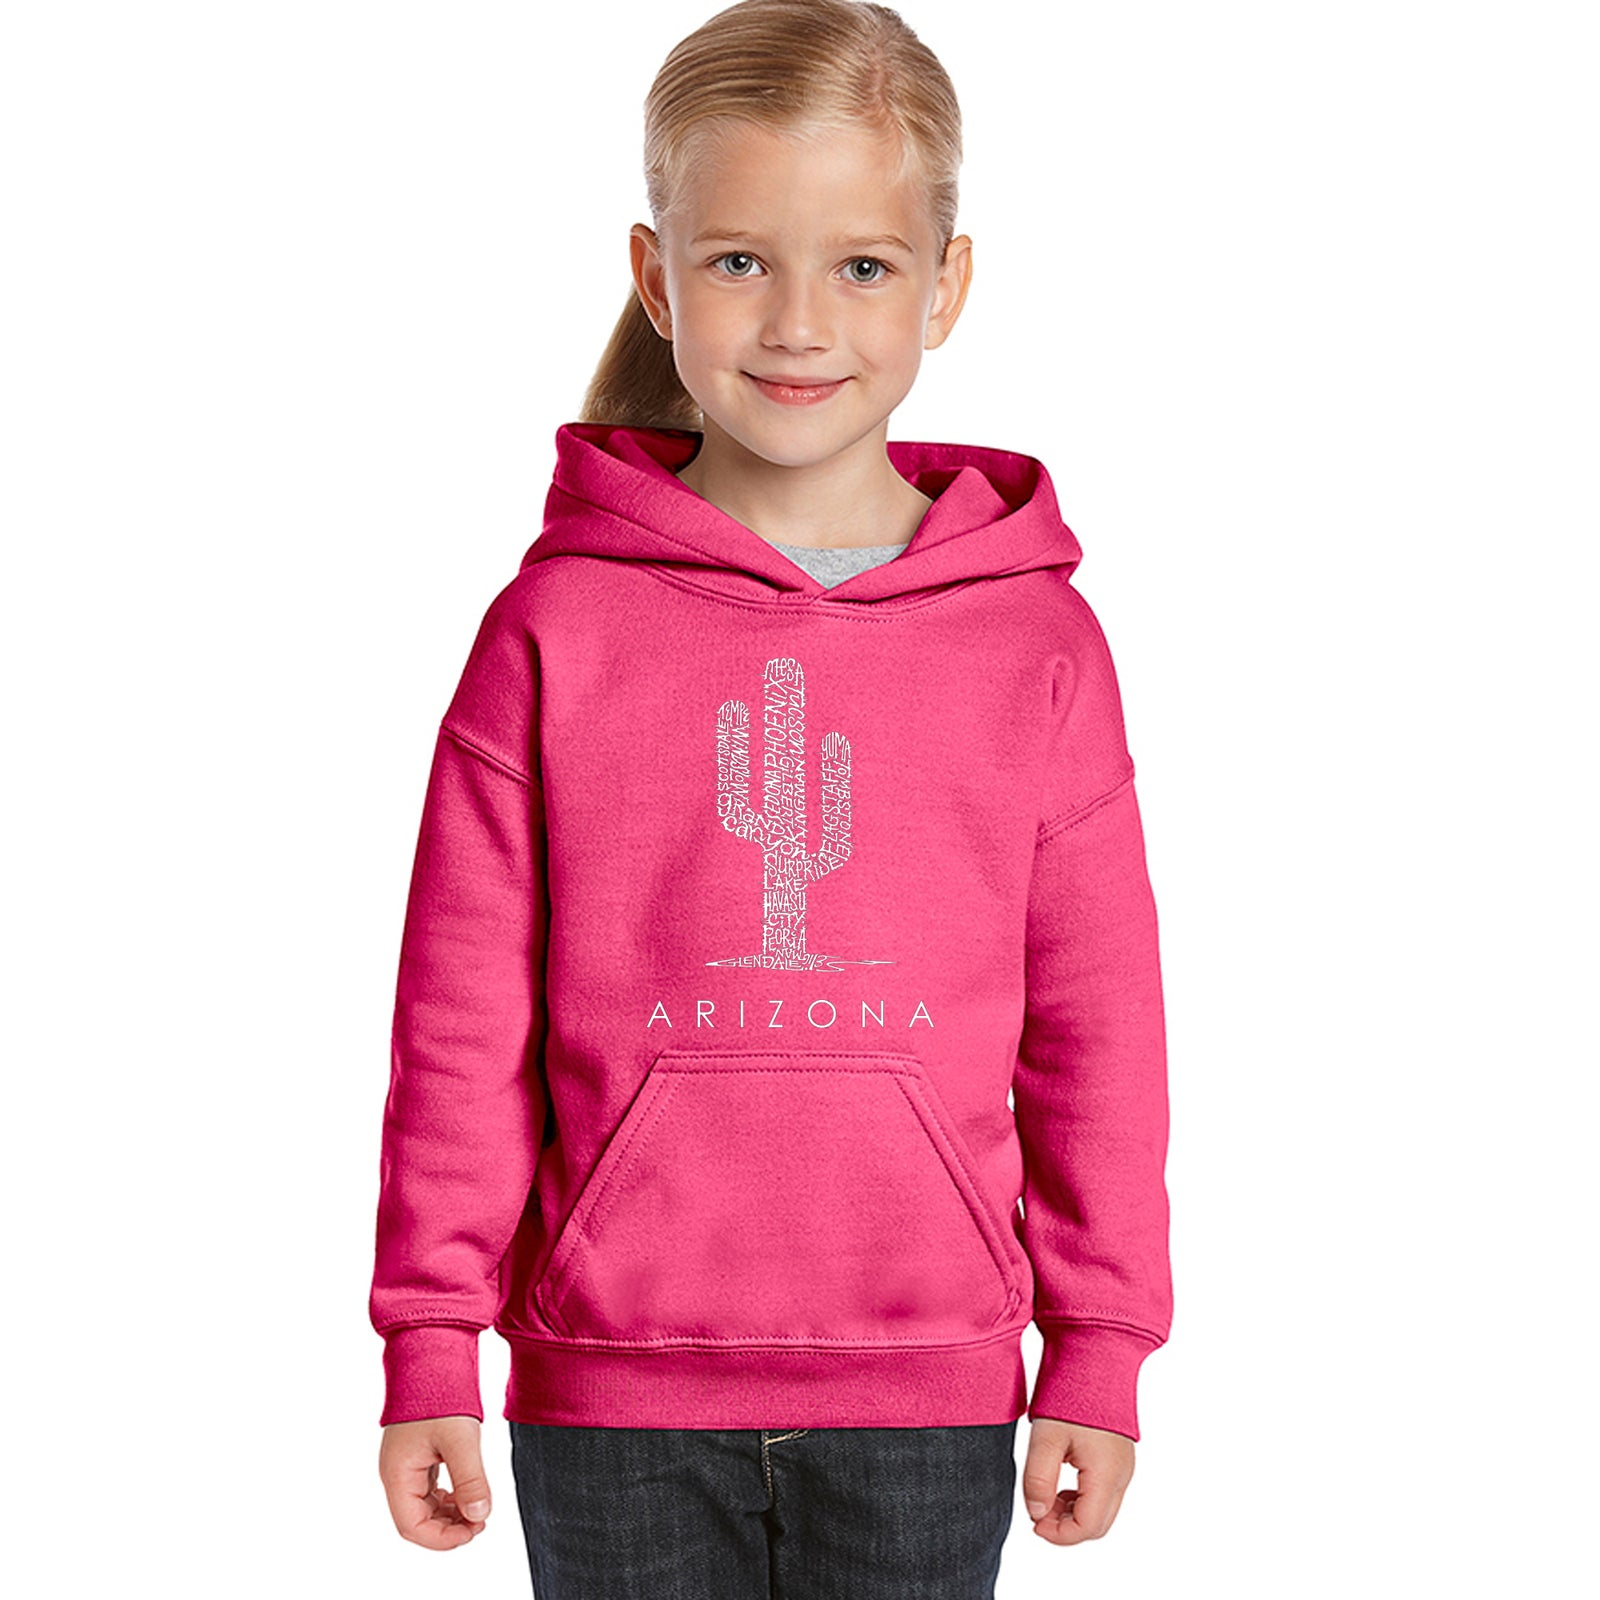 Girl's Hooded Sweatshirt - Arizona Cities